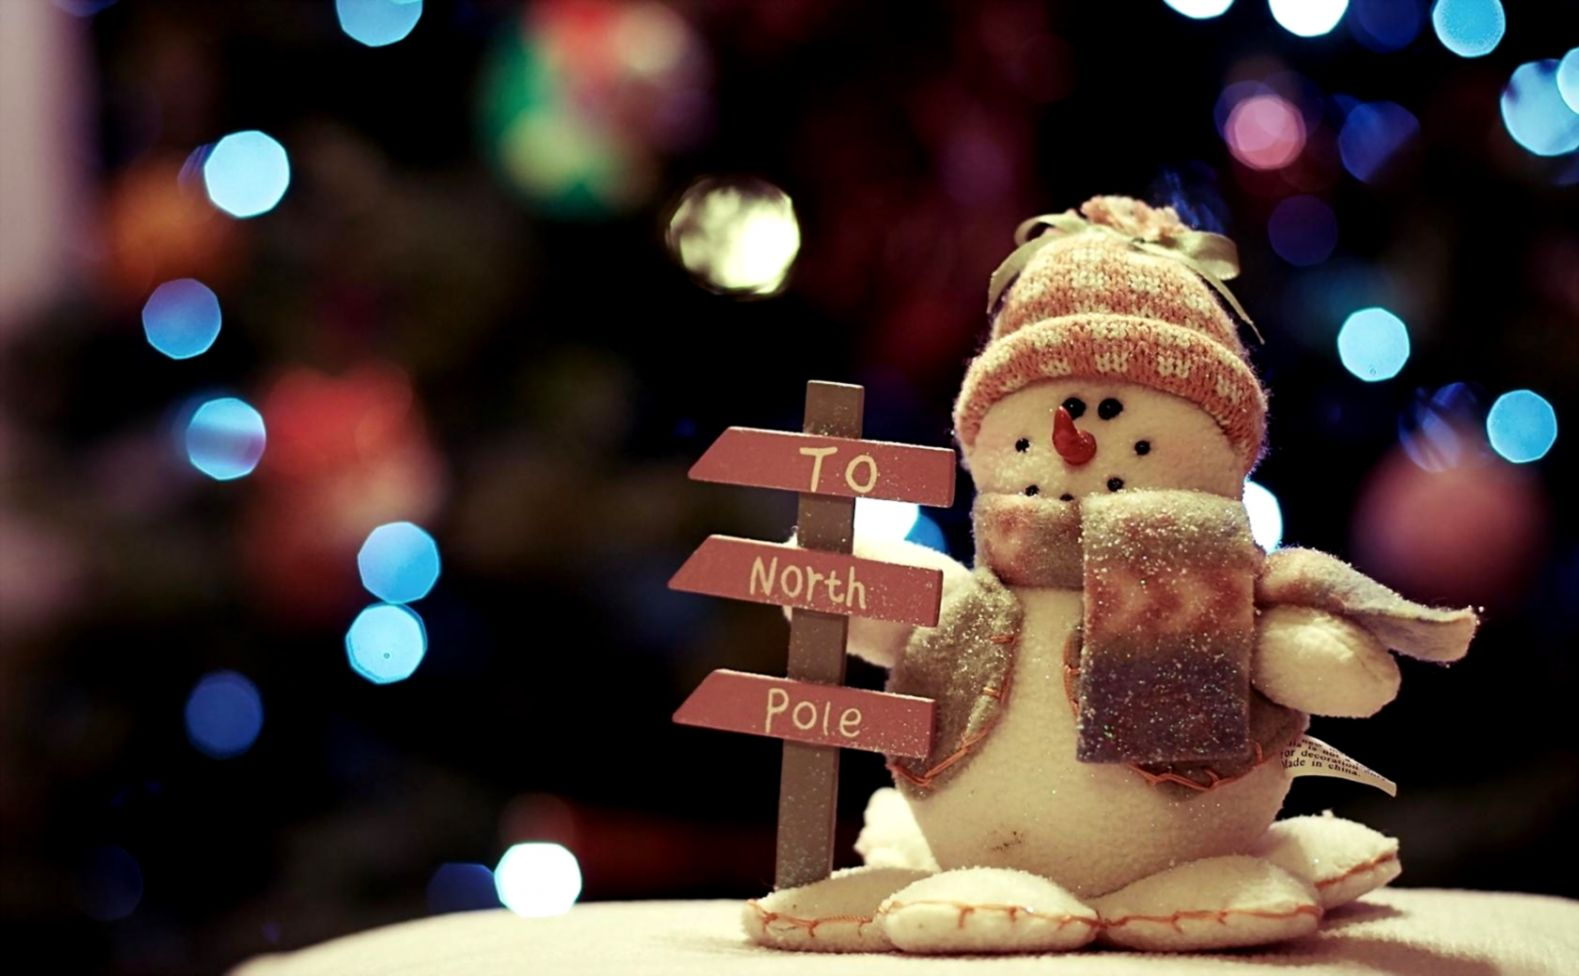 Snowmen Toys Christmas New Year Hd Wallpaper Wallpapers User